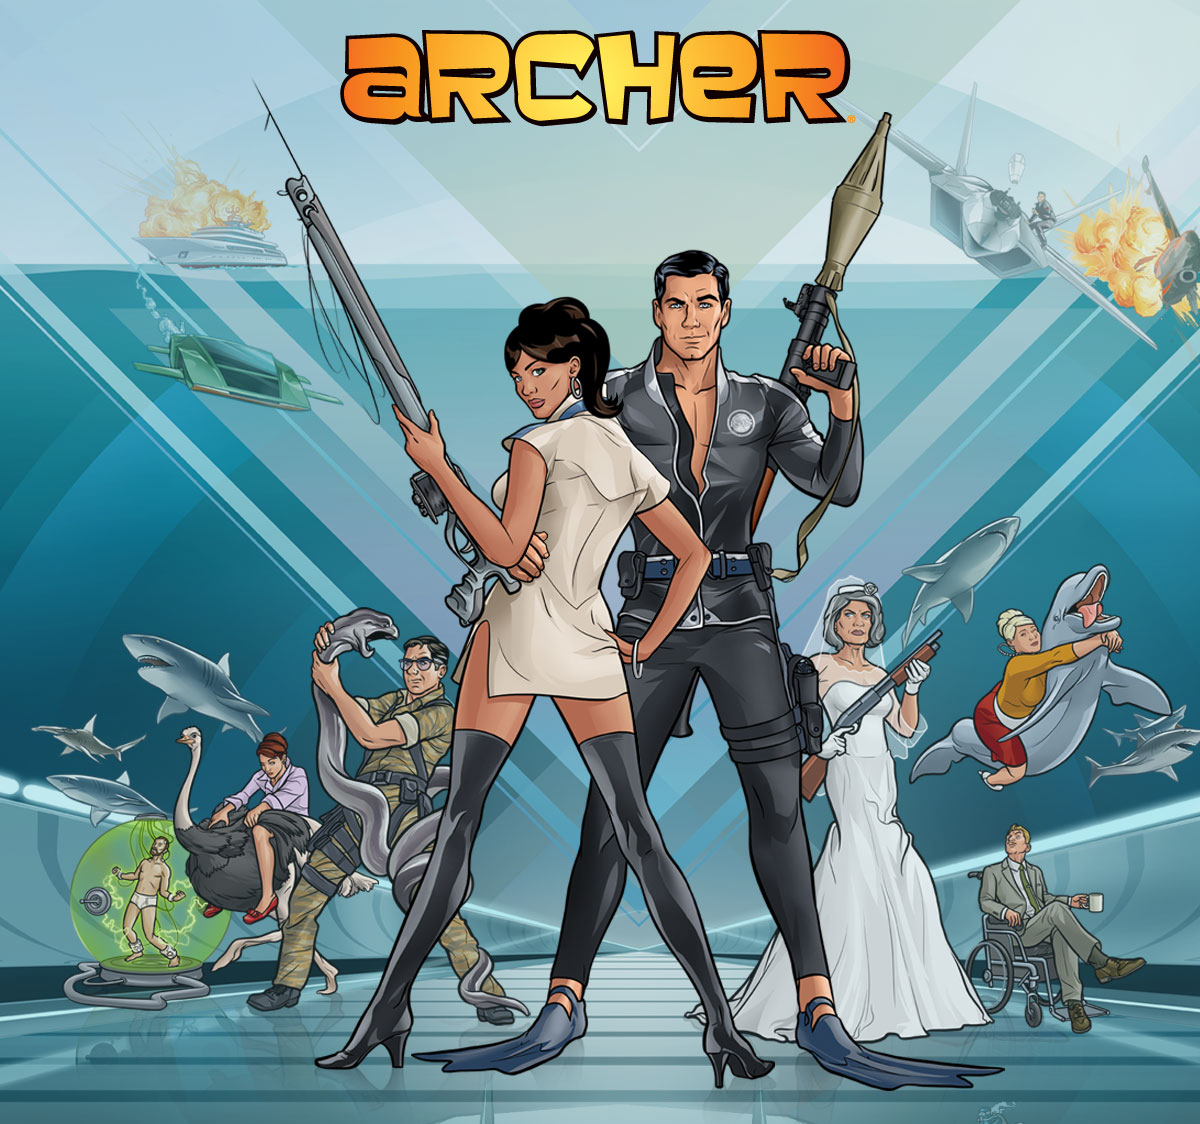 FX cartoon Archer